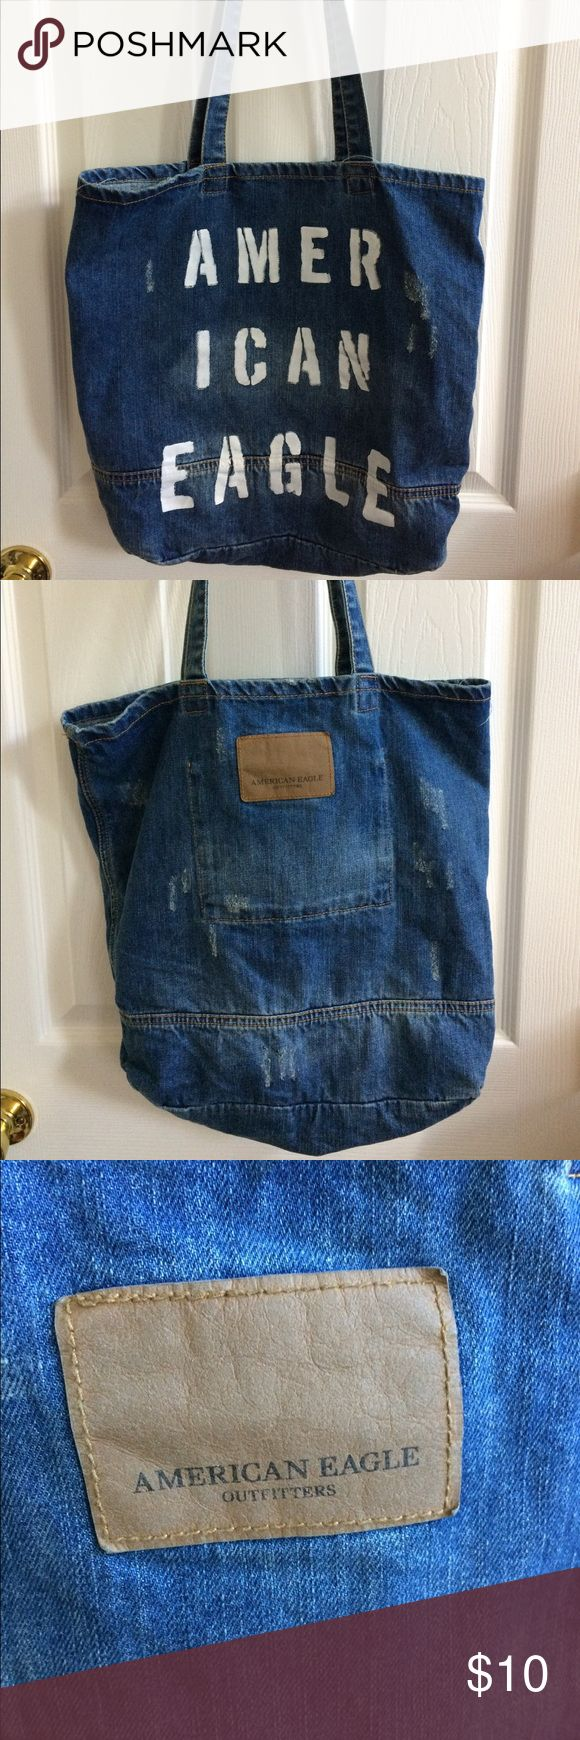 NWT American Eagle distressed denim tote bag Cute distressed denim tote has long shoulder straps. New with tags. Smoke free home. American Eagle Outfitters Bags Totes